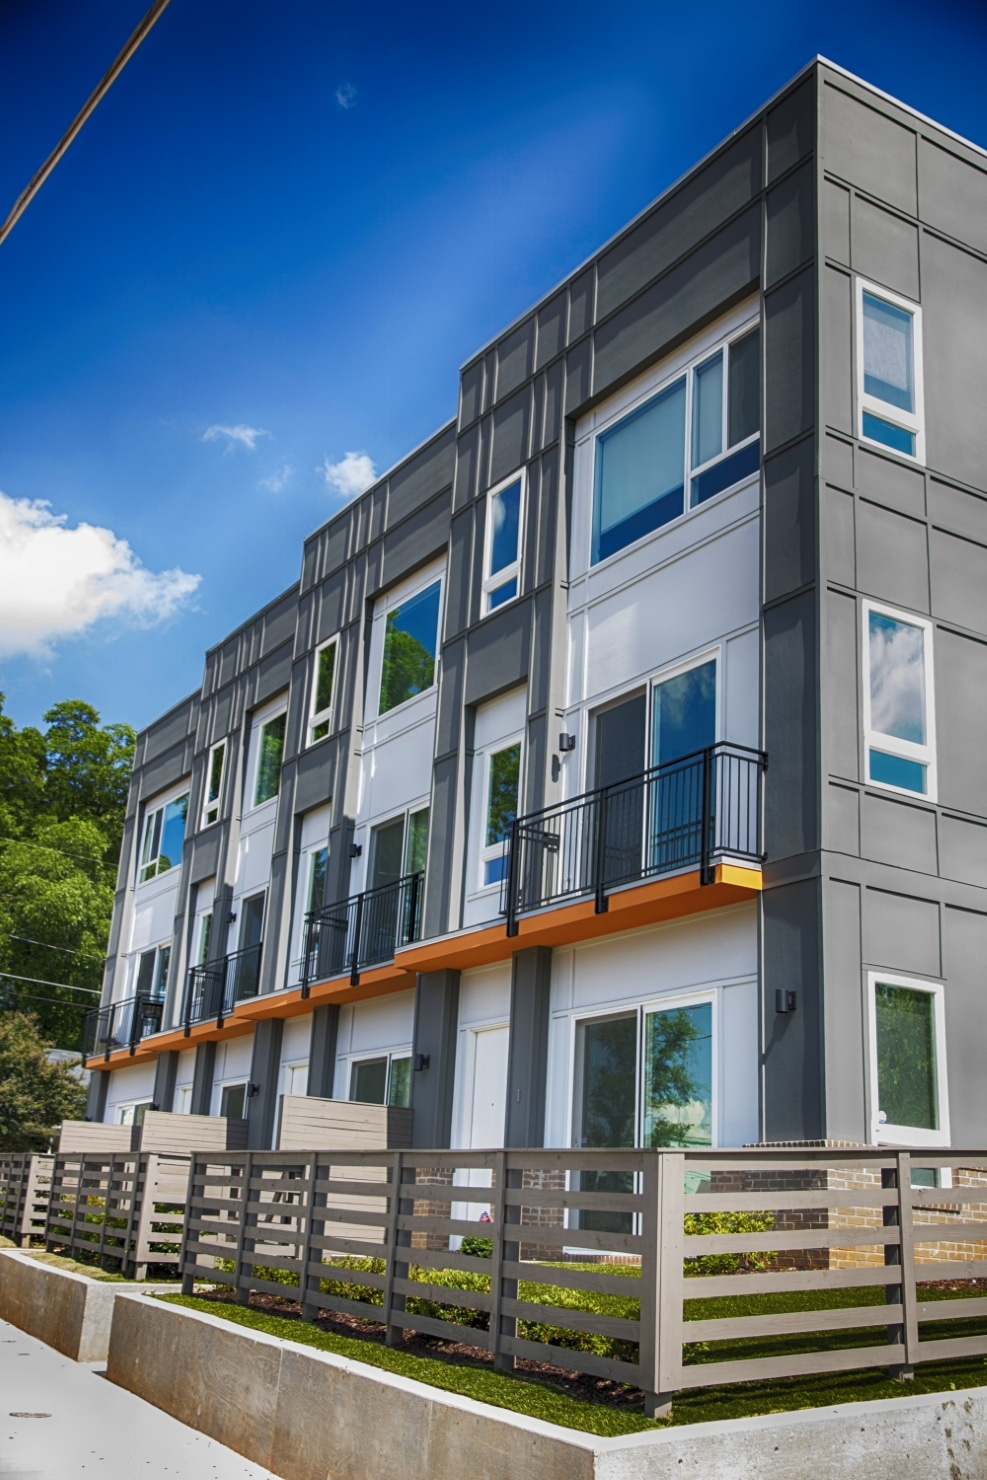 Lucy Street Townhomes